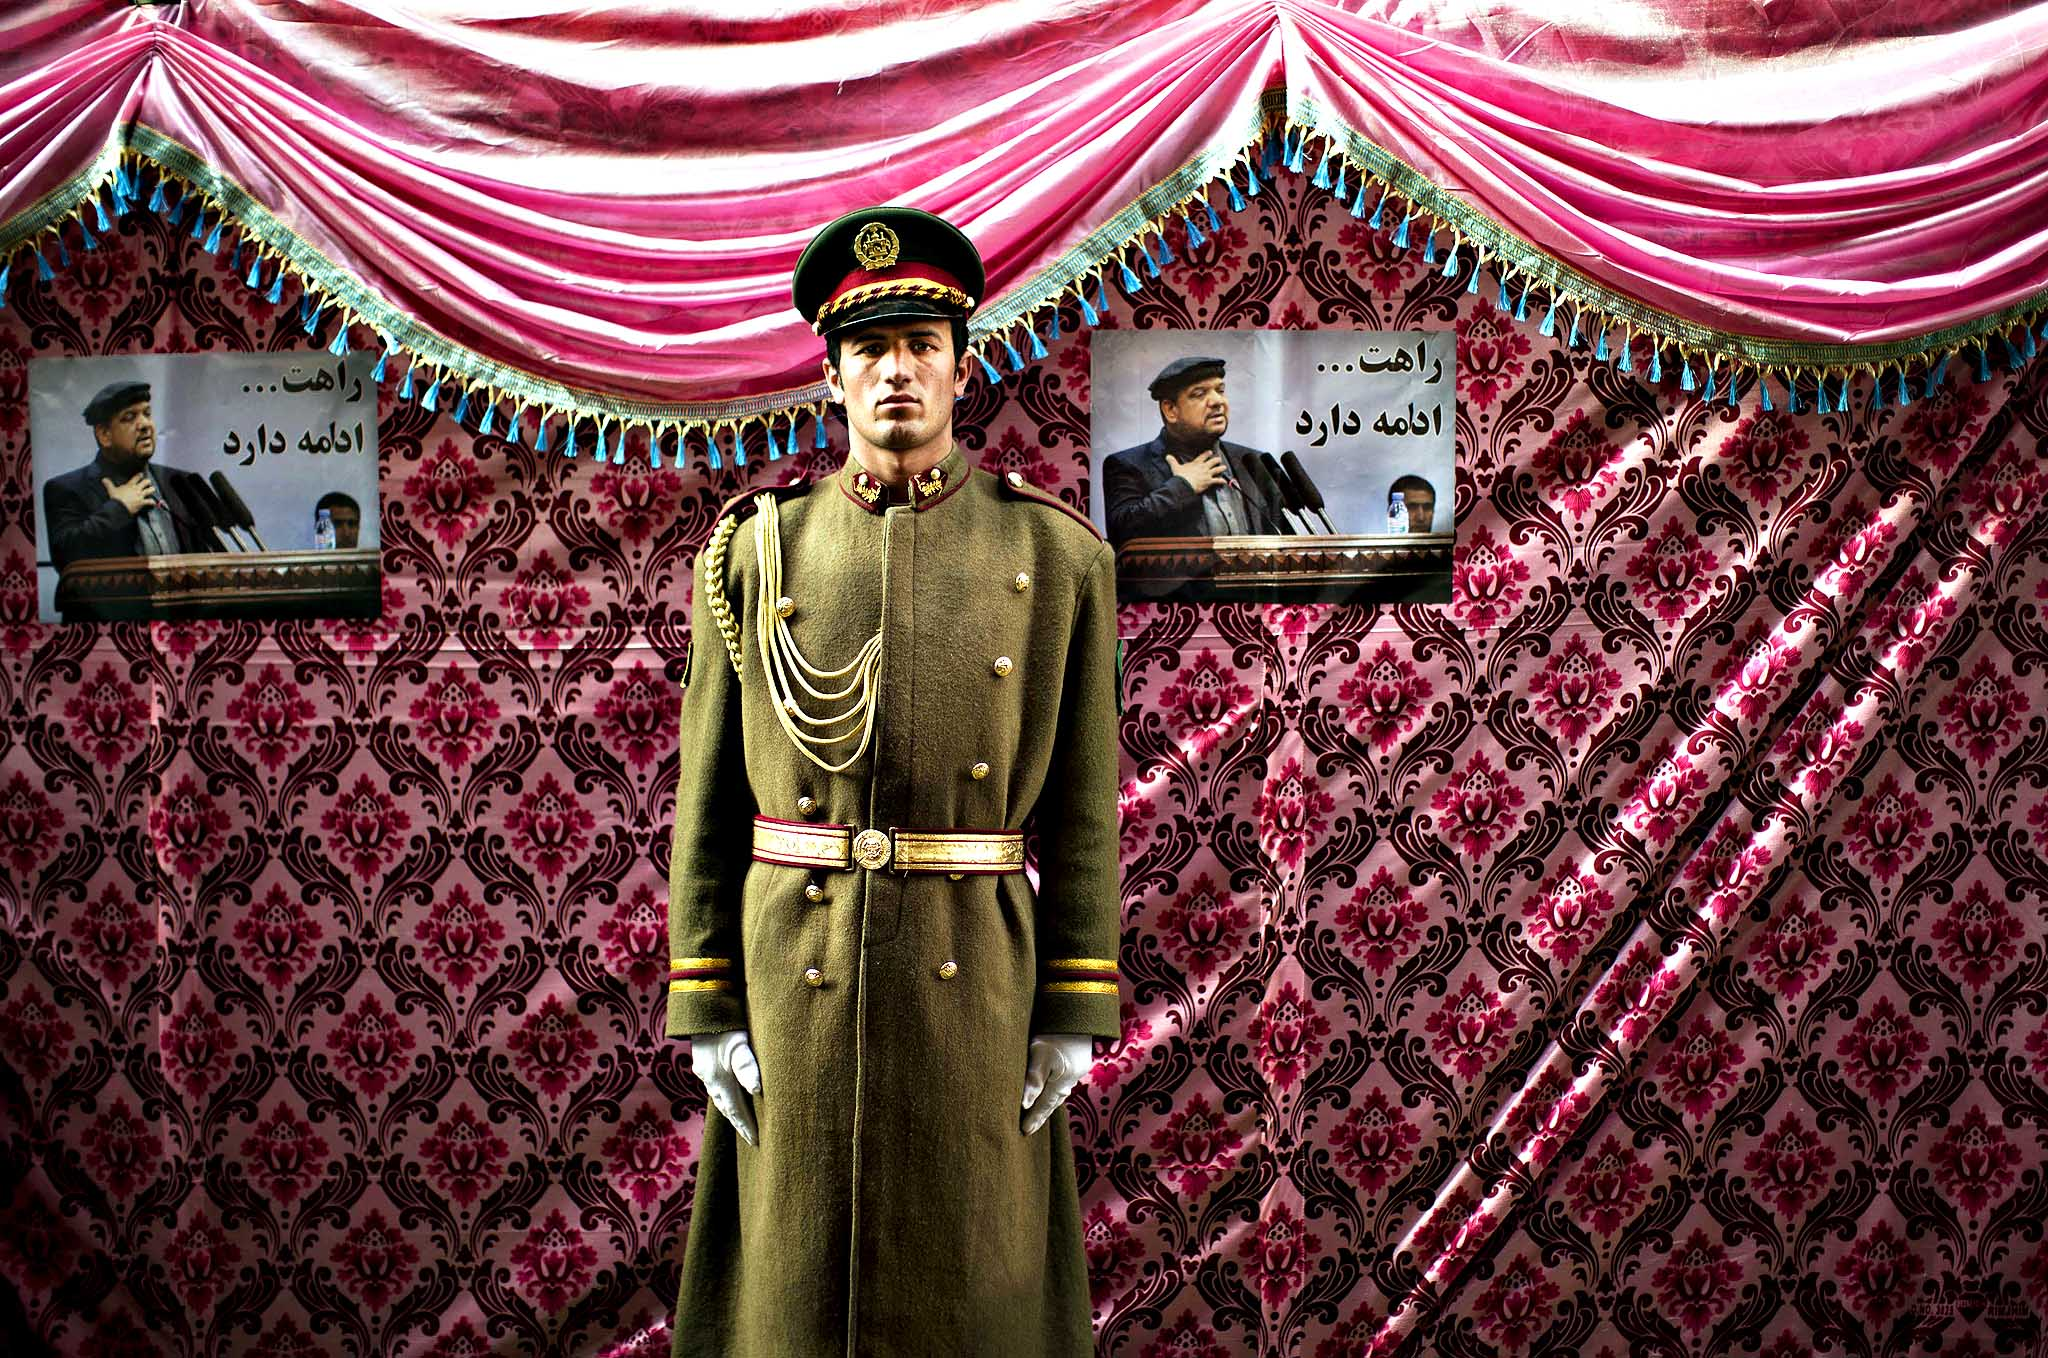 An Afghan honour  guard stands next to pictures of late Afghan Vice President Field Marshal Mohammed Qasim Fahim outside his house in Kabul, Afghanistan, Monday, March 10, 2014. Afghanistan's influential Vice President Fahim, a leading commander in the alliance that fought the Taliban who was later accused with other warlords of targeting civilian areas during the country's civil war, died on Sunday. He was 57.